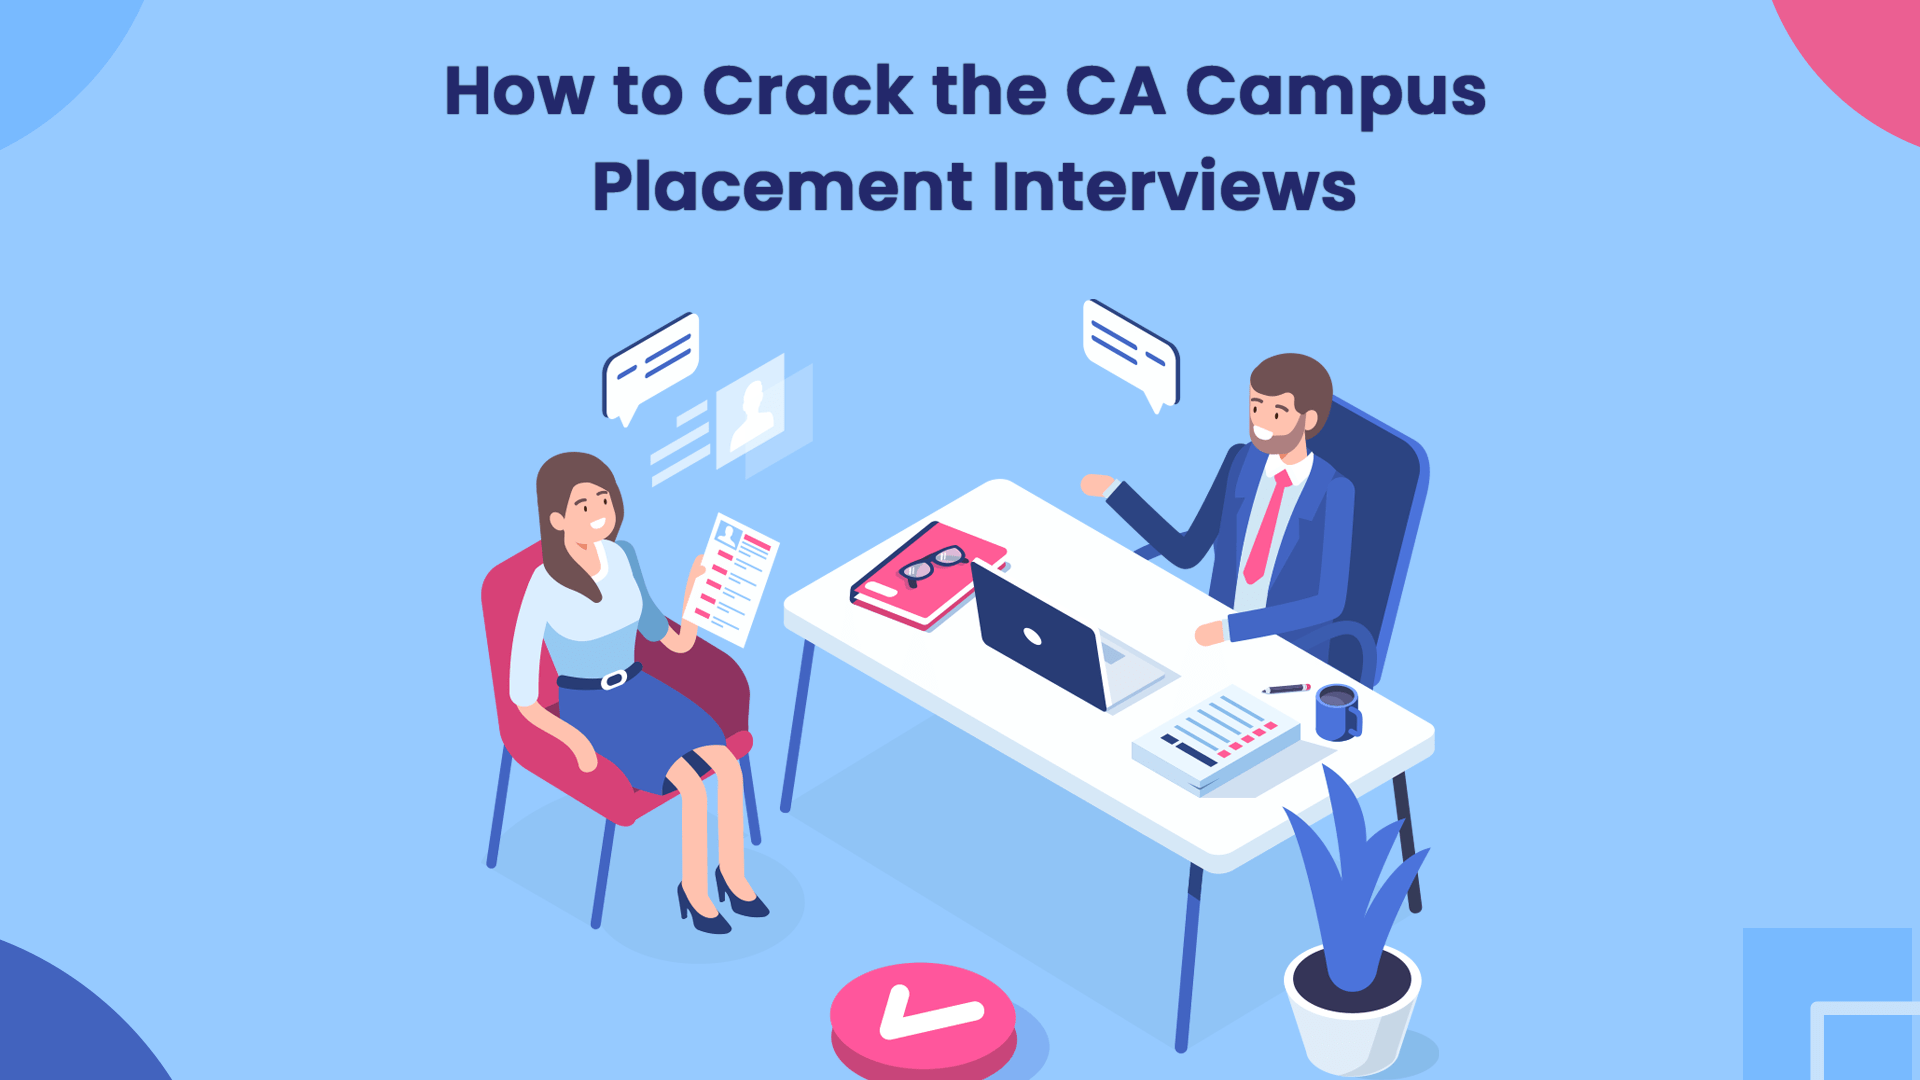 How to Crack the CA Campus Interviews